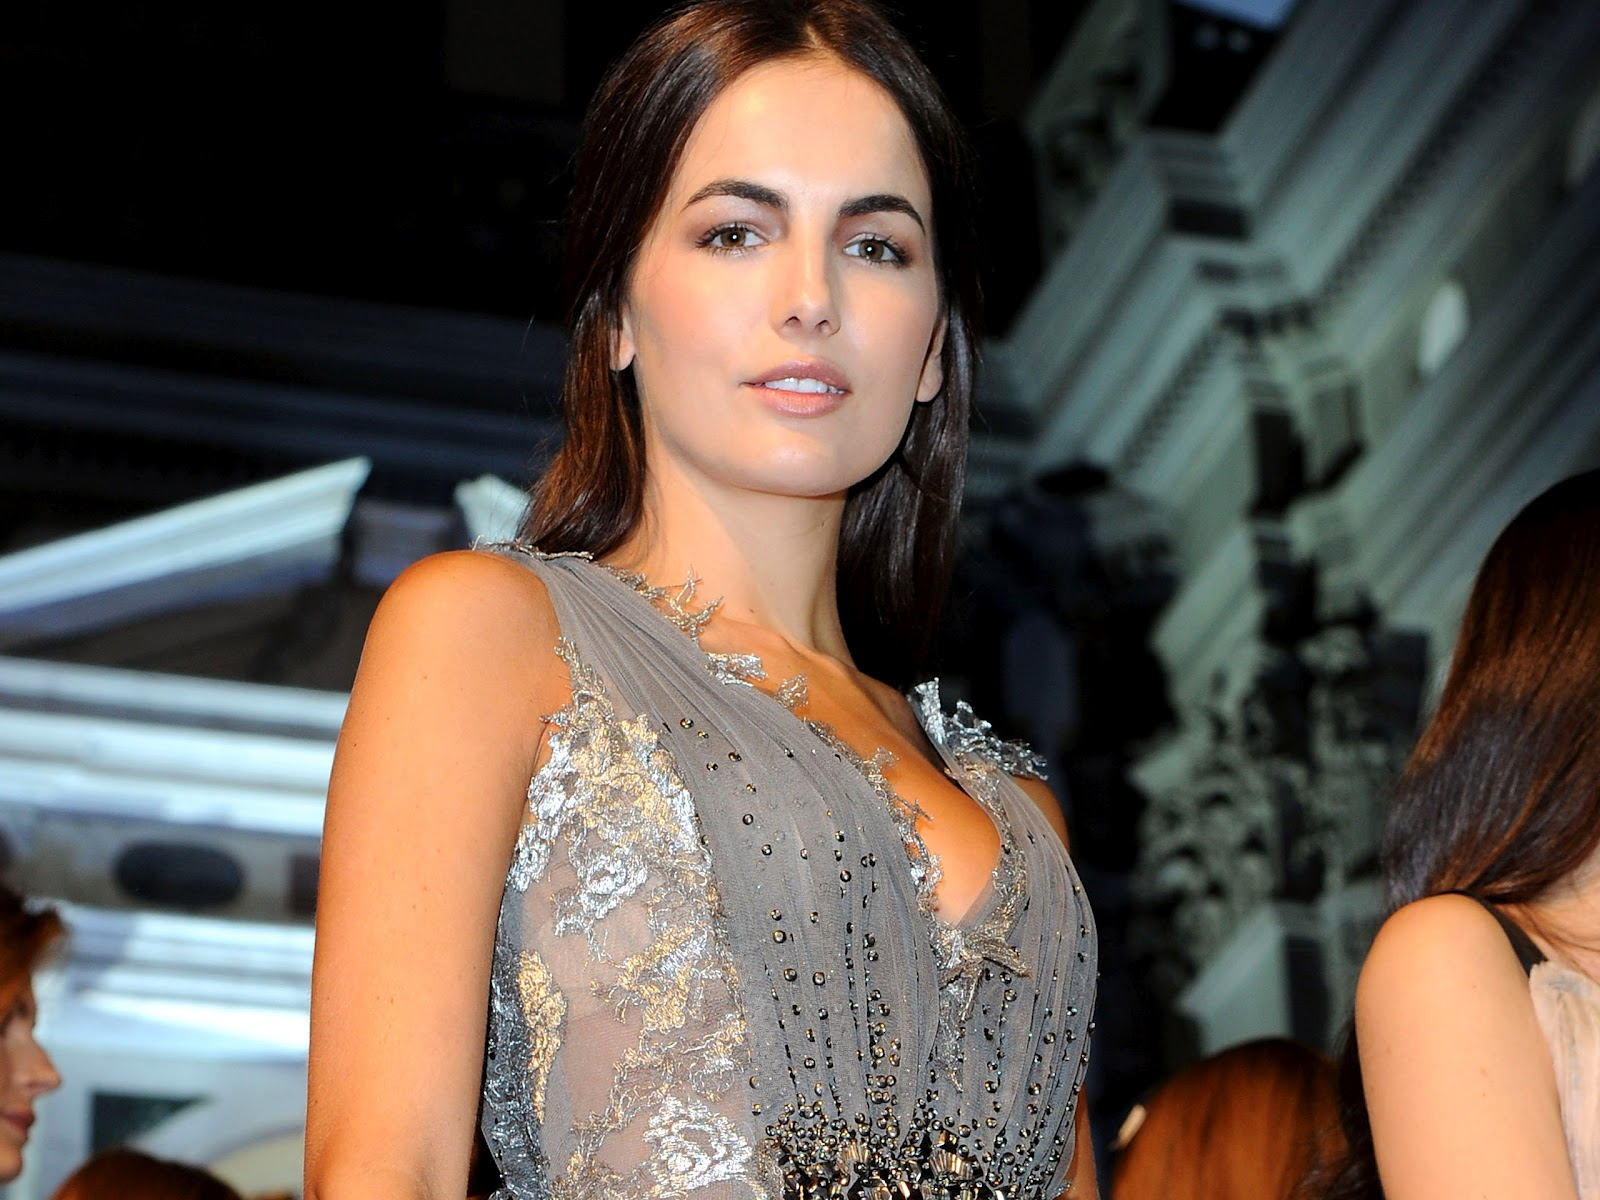 Favori Camilla Belle New HD Wallpapers 2012 ~ HOT CELEBRITY: Emma Stone GM75